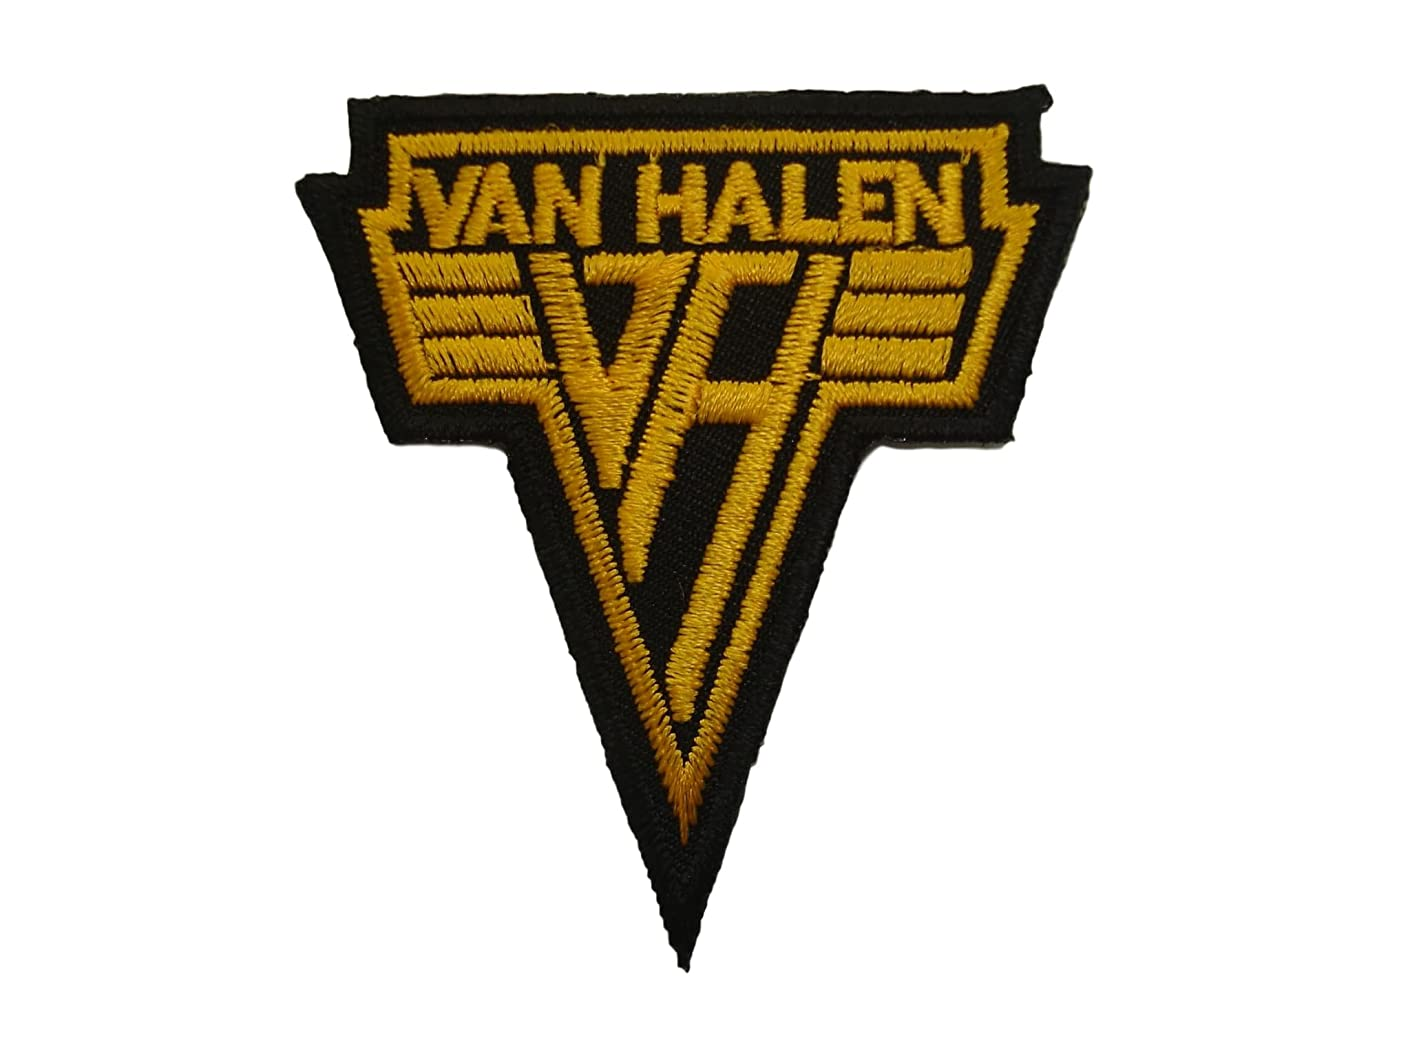 VAN HALEN Iron On Patch Applique Motif Rock Band Biker Decal 2.5 x 2.2 inches (6.5 x 5.8 cm)